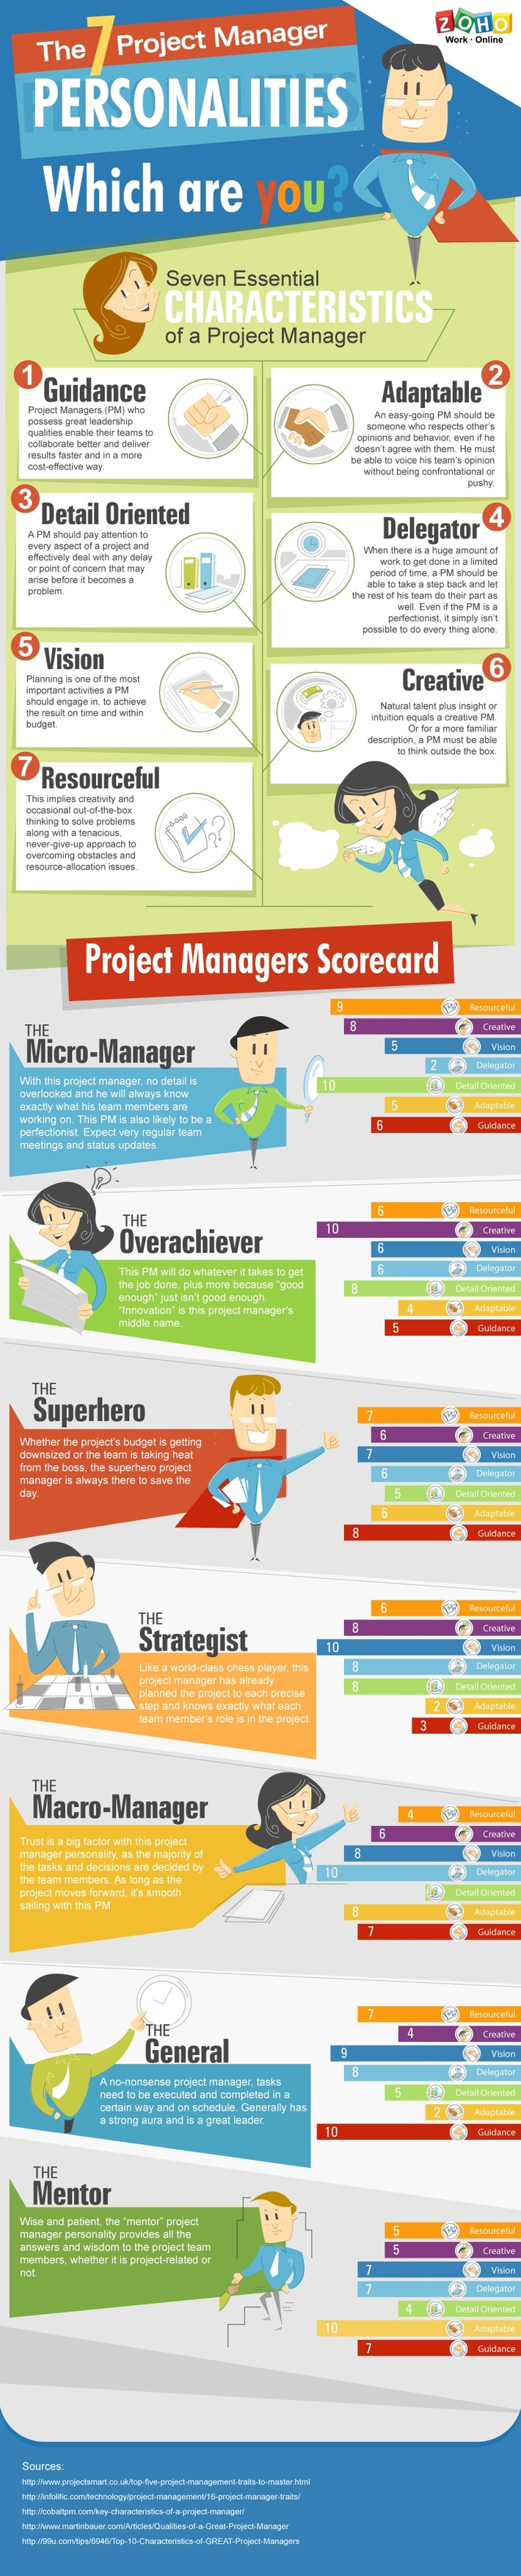 The 7 Project Manager Personalities: Which One Are You? | Excellent Business Blogs | Scoop.it